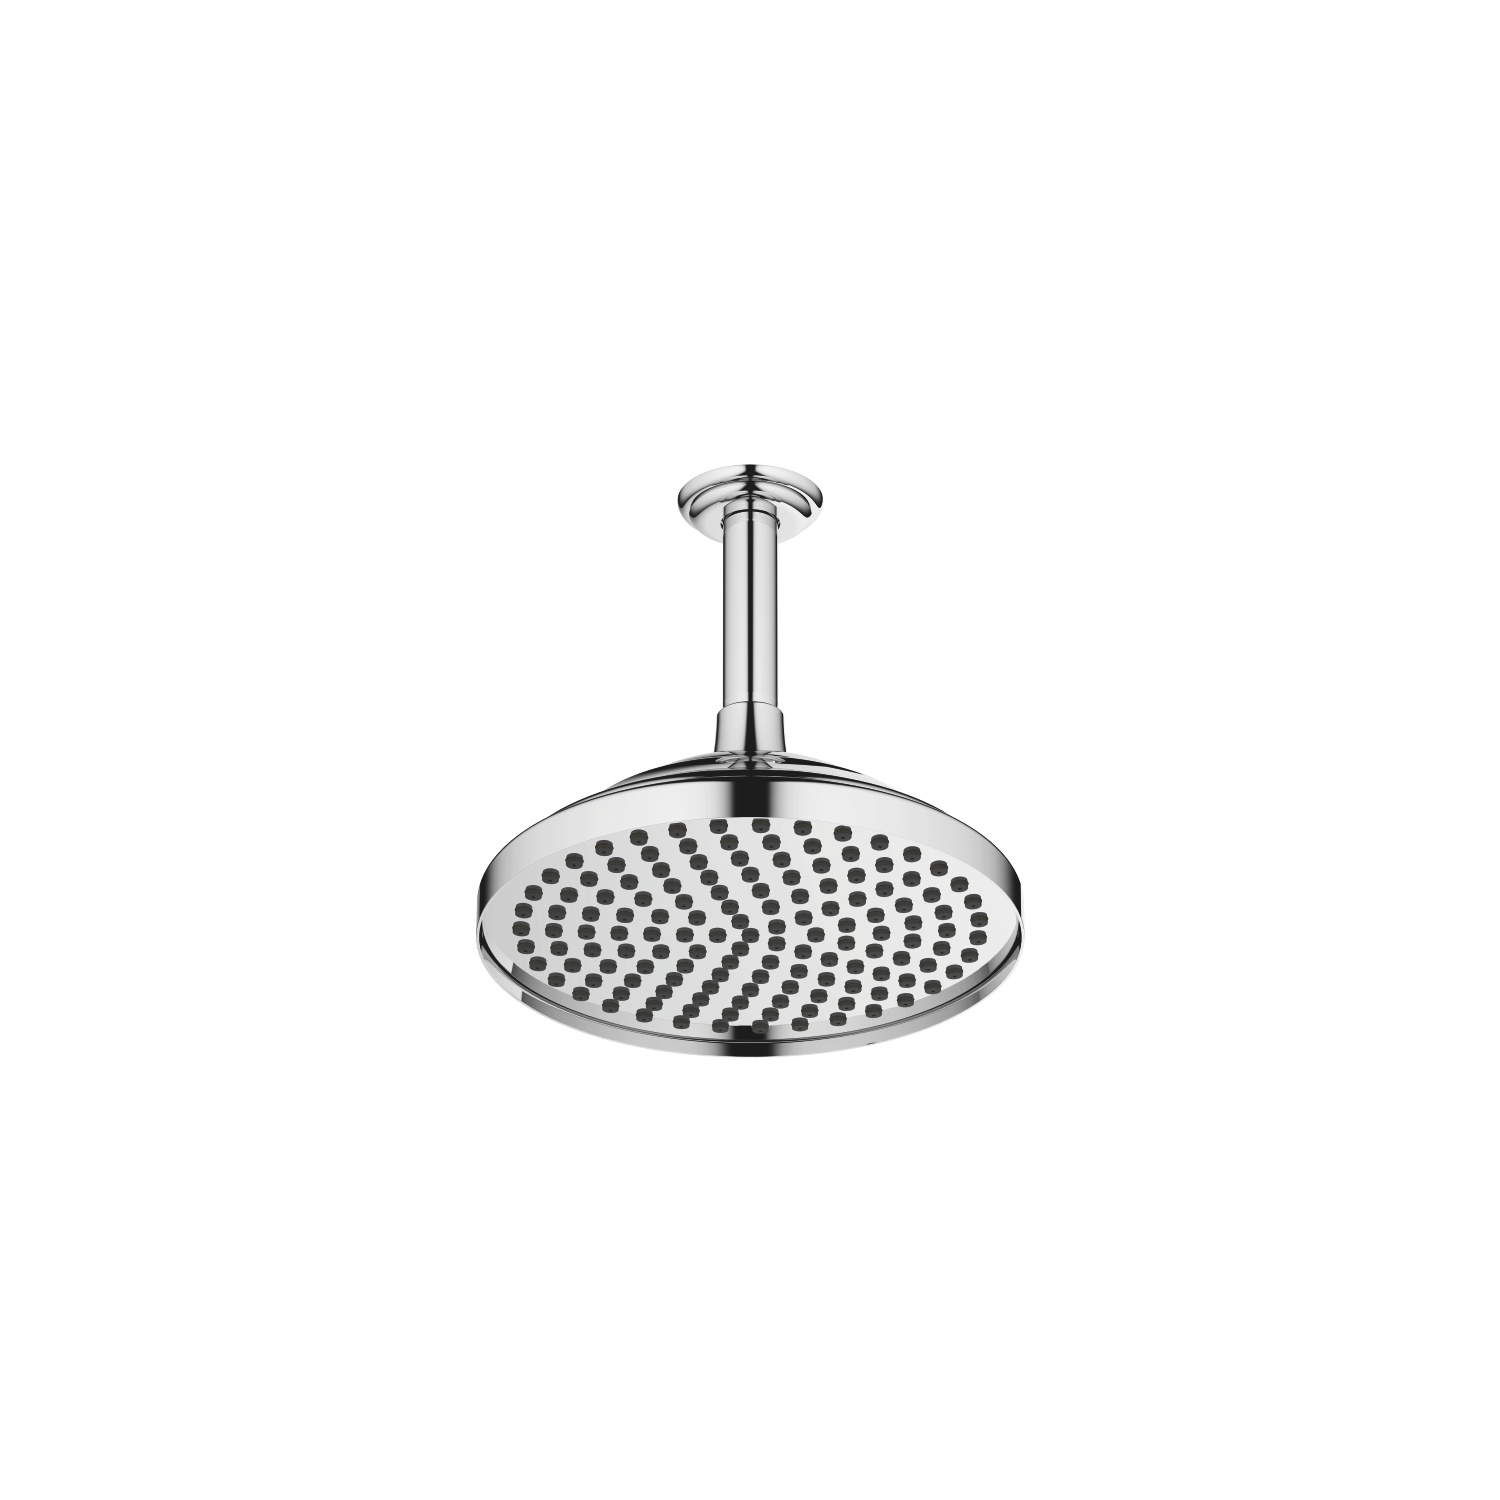 Rain shower with ceiling fixing - polished chrome - 28 565 977-00